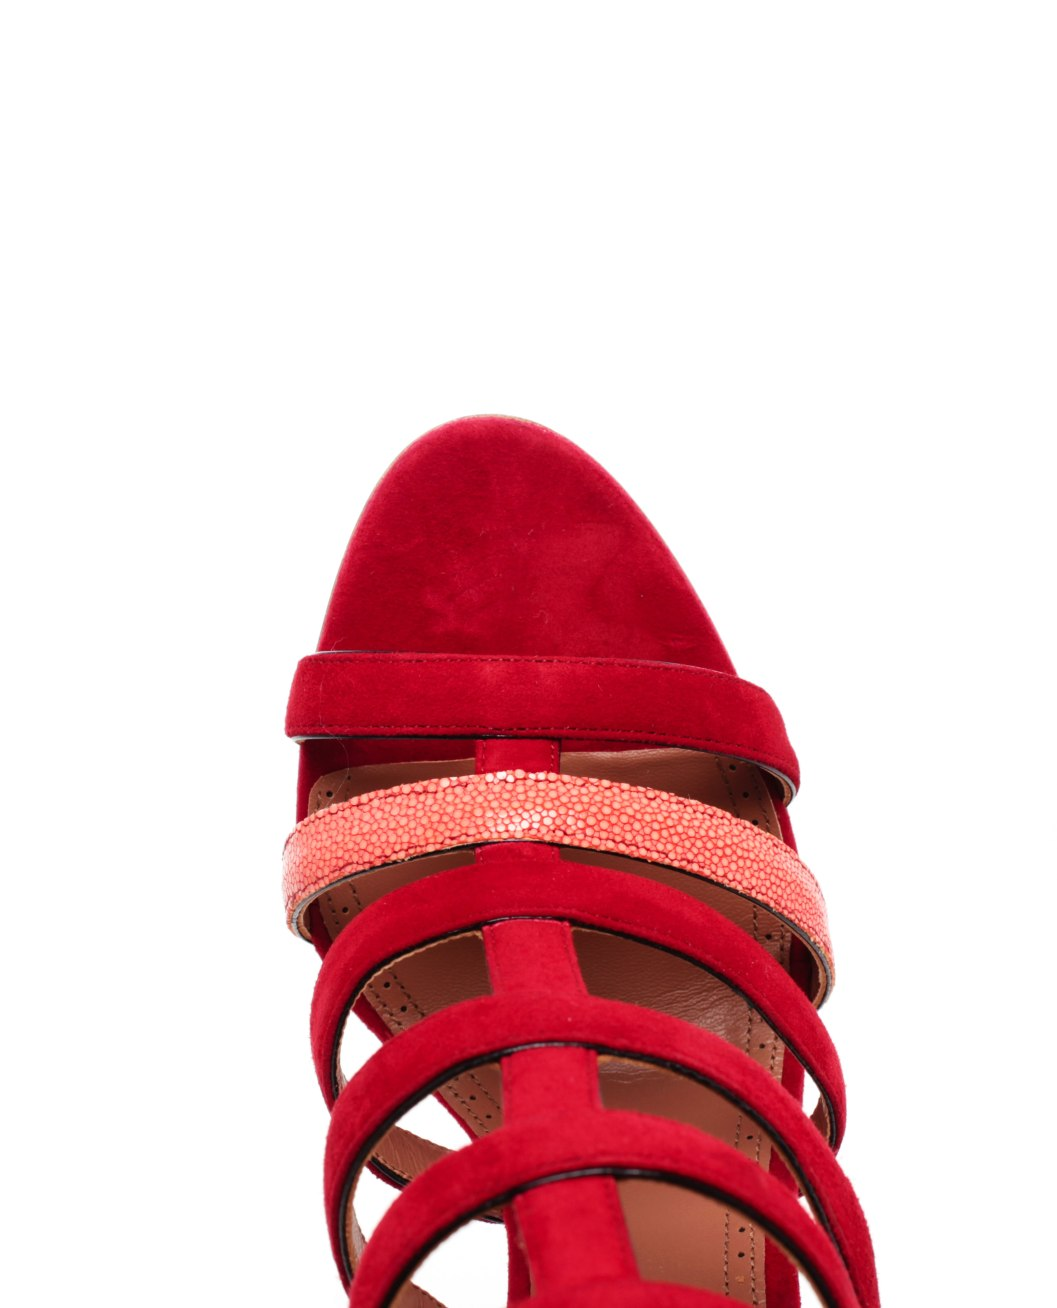 Alaia-Red-Strappy-Sandals_4